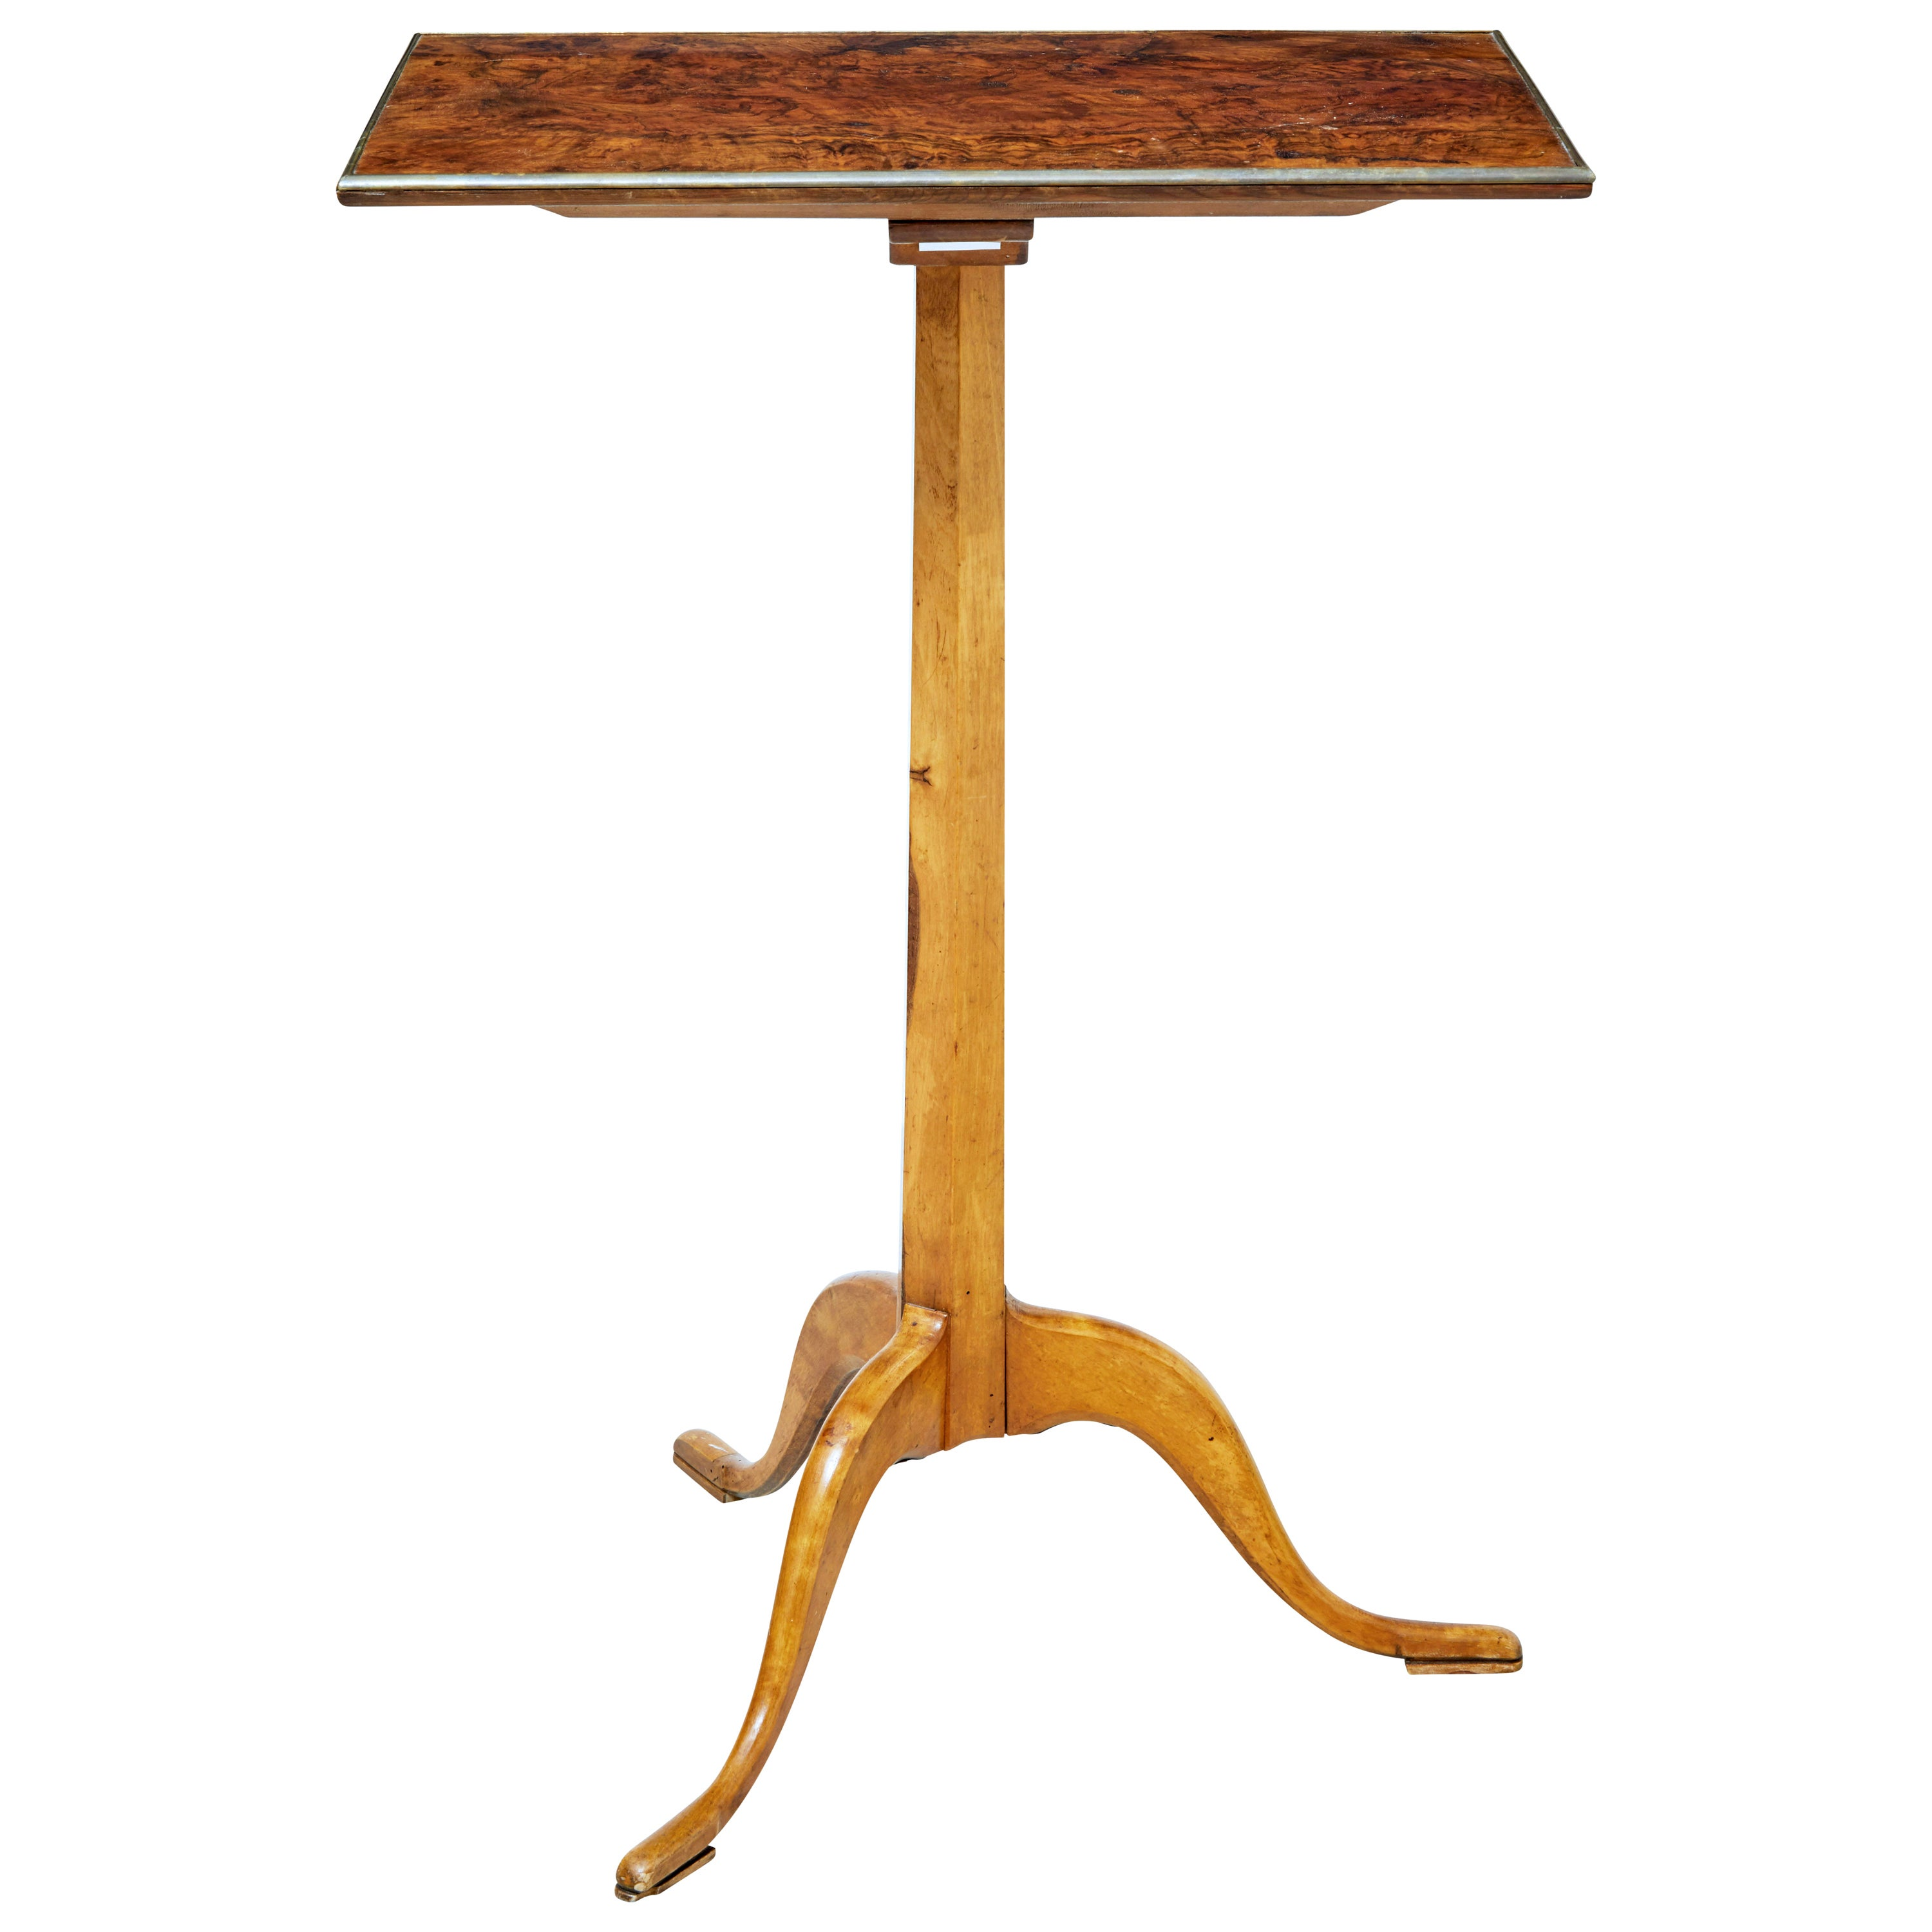 19th Century Burr Walnut Occasional Table